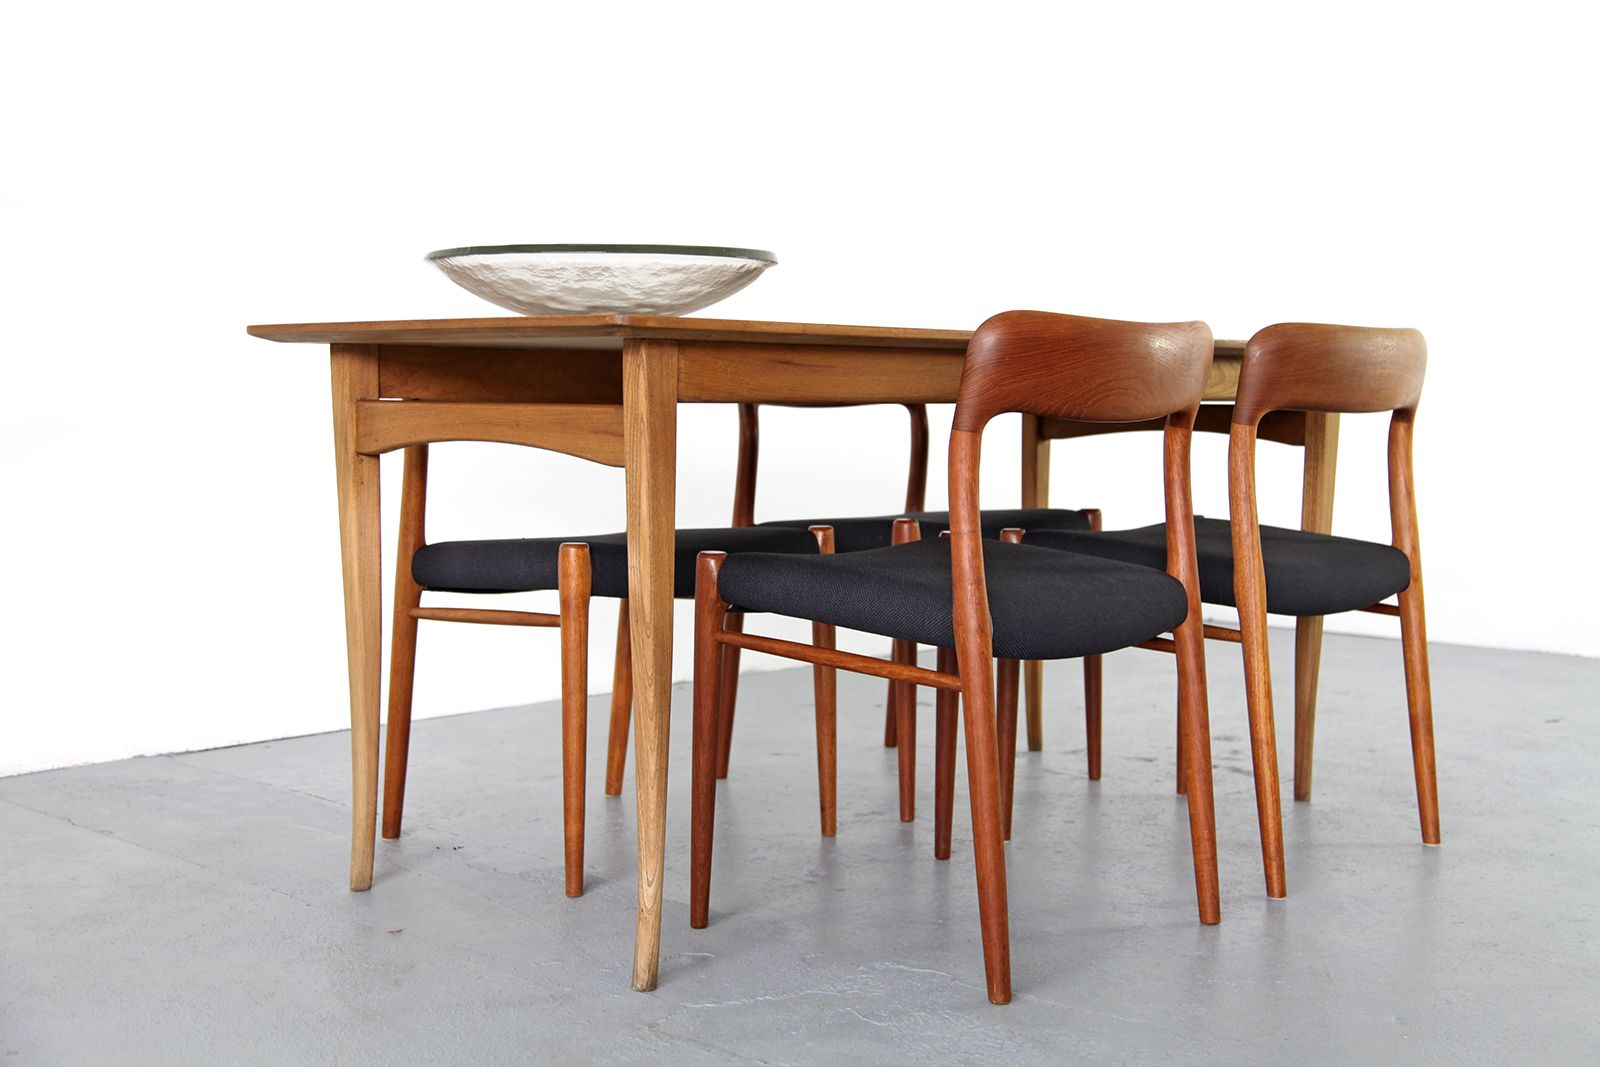 Danish modern teak oak dining table 1960 for sale at pamono for Modern oak dining table